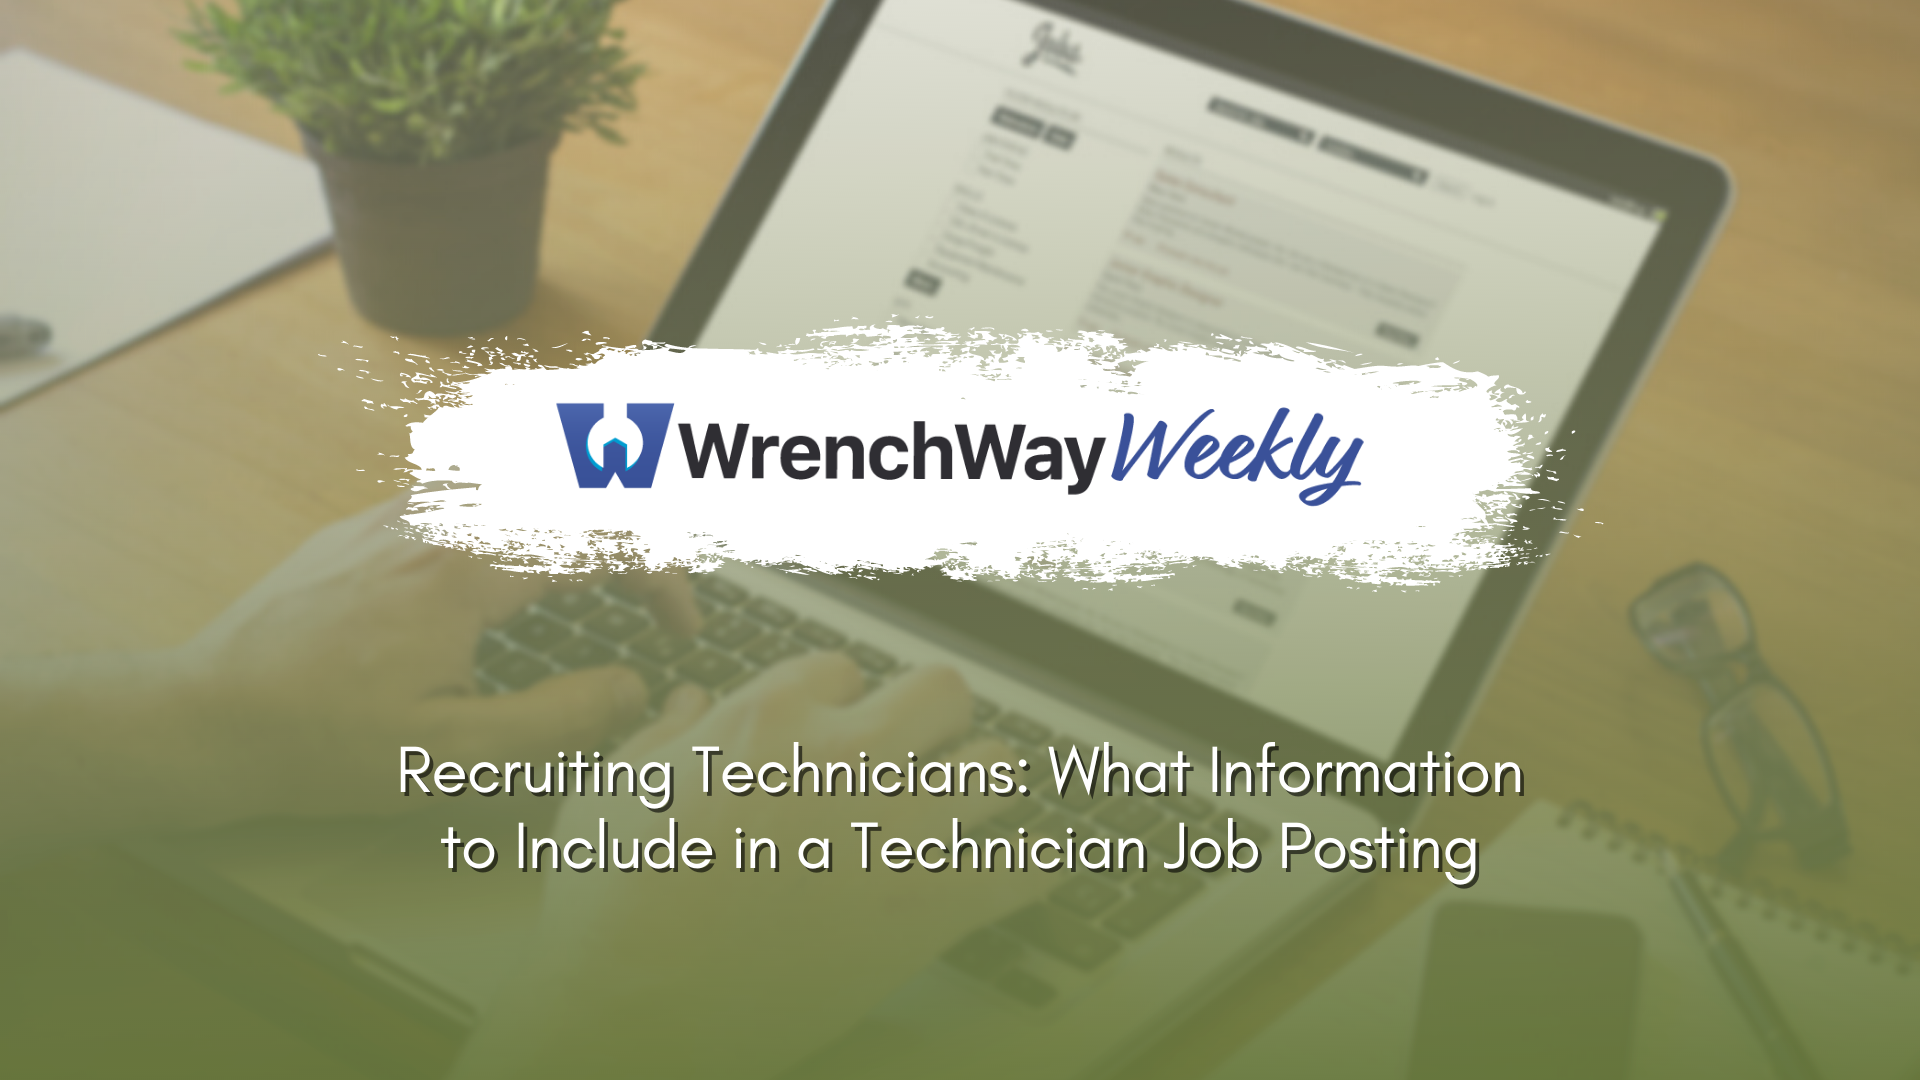 wrenchway weekly episode recruiting technicians